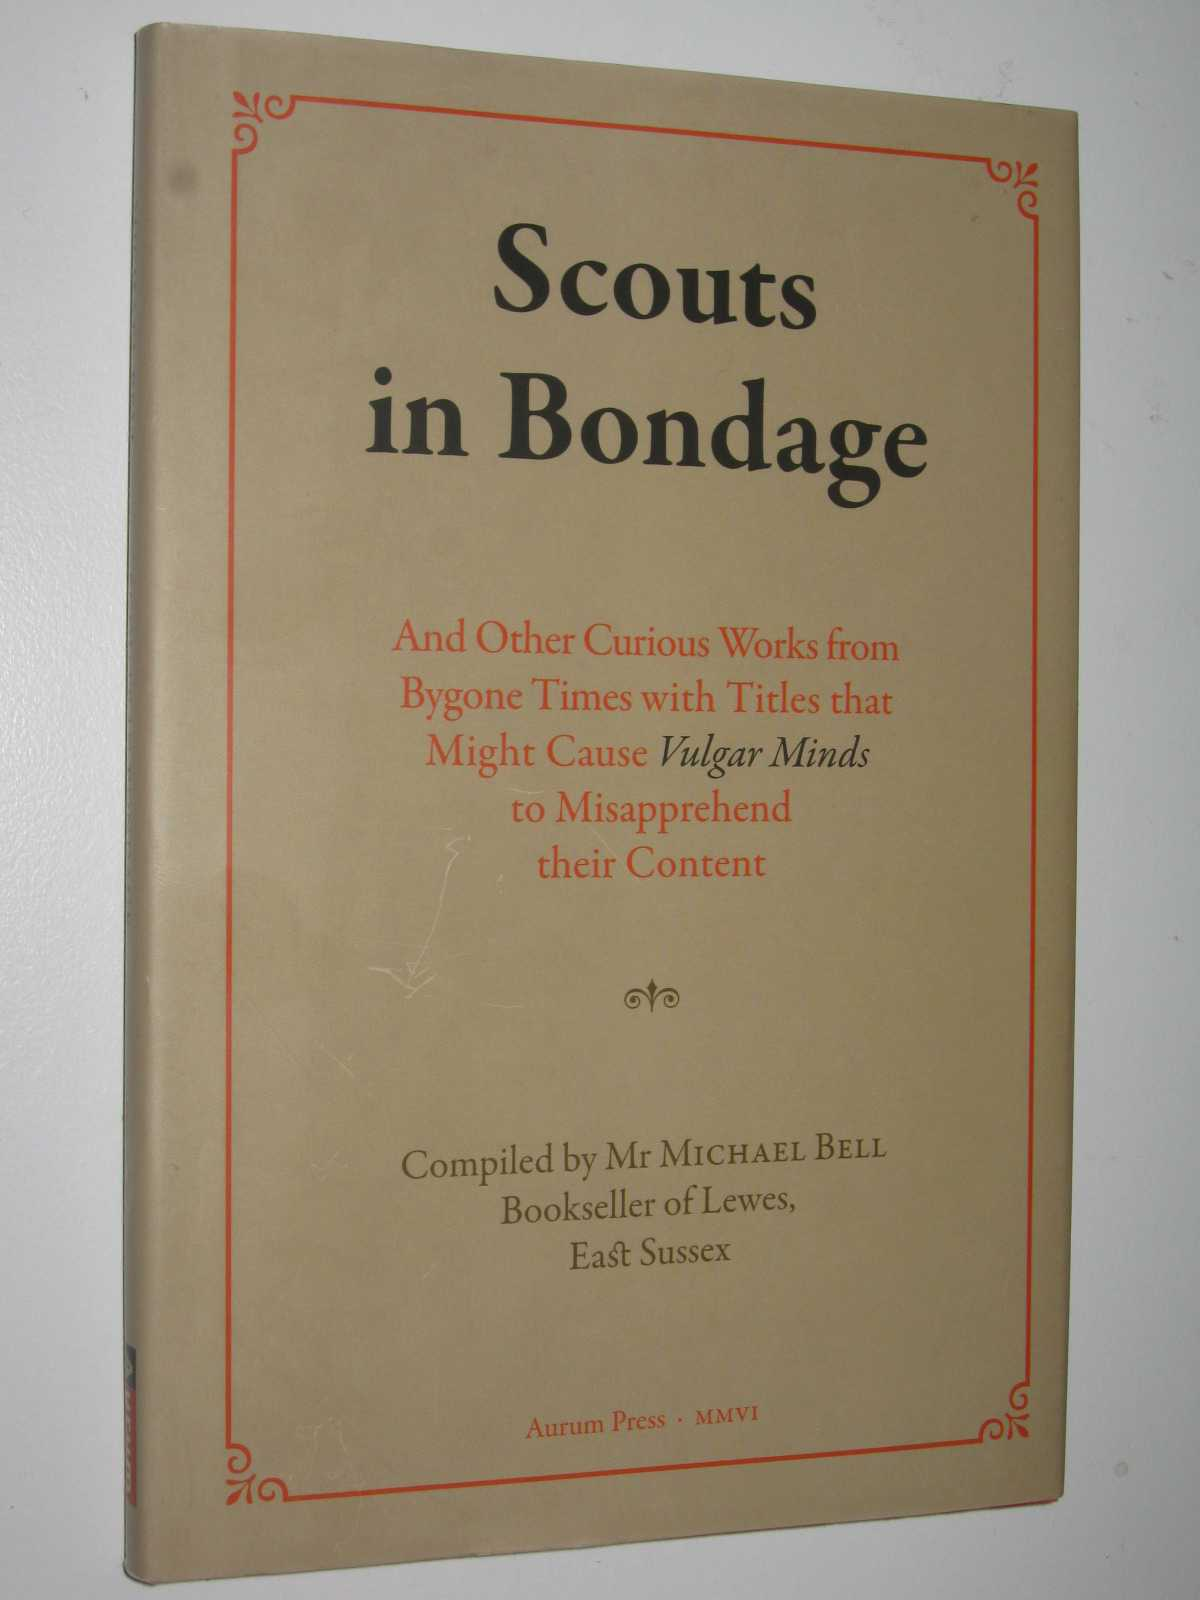 Scouts in Bondage : And Other Curious Works from Bygone Times with Titles That Might Cause Vulgar Minds to Misapprehend Their Content, Bell, Michael